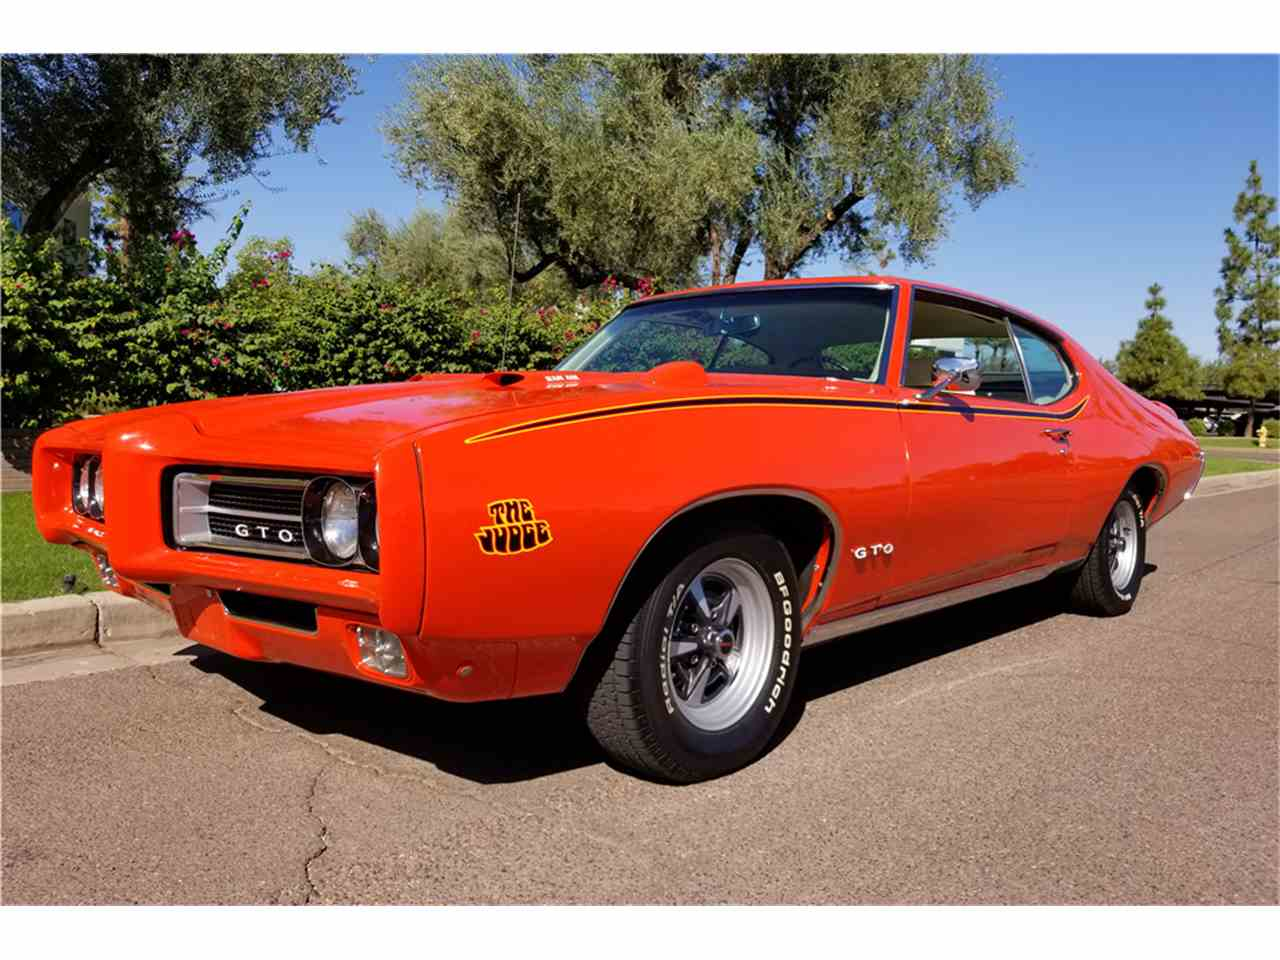 1969 Pontiac GTO (The Judge) for Sale | ClassicCars.com | CC-1047468